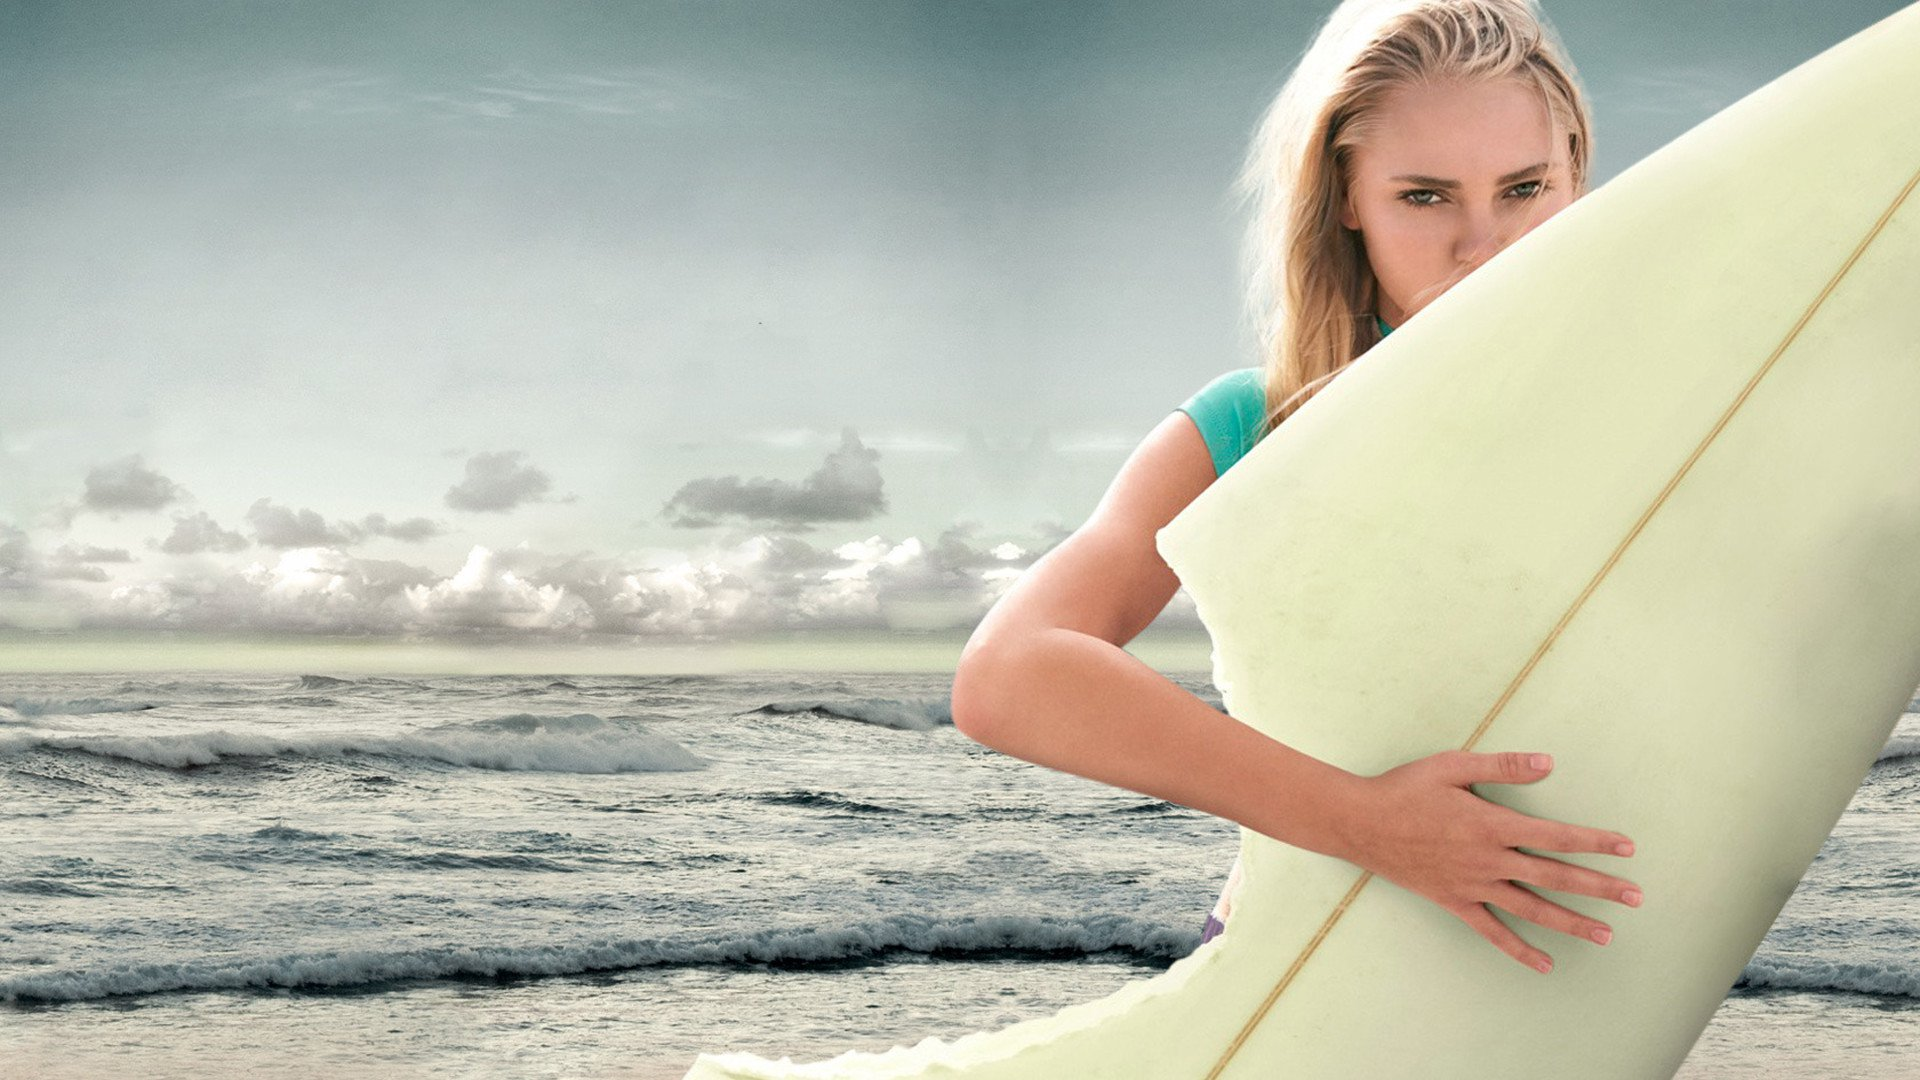 Soul Surfer Soundtrack Music Complete Song List Tunefind